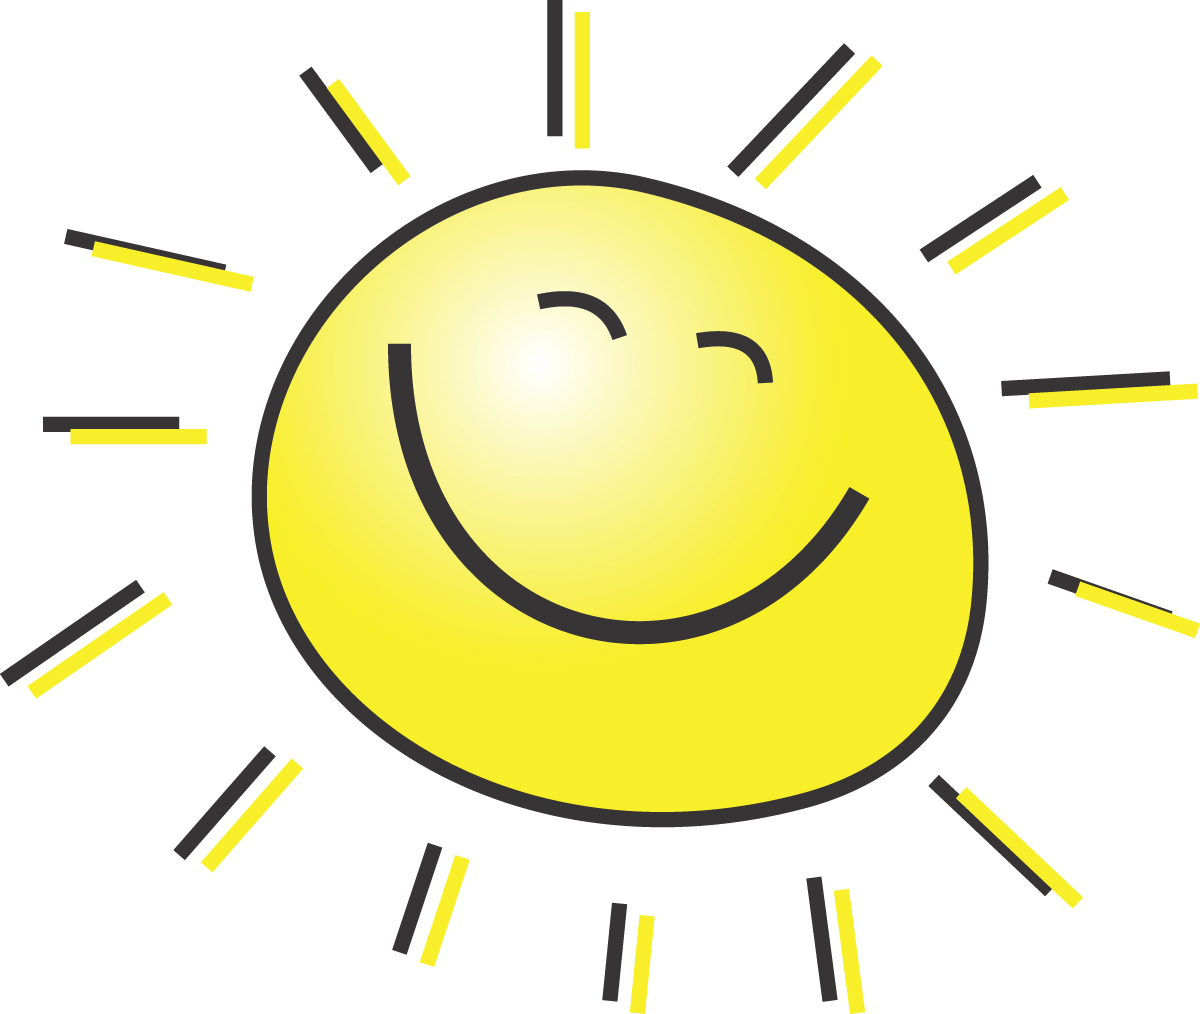 Free Summer Clipart Illustration Of A Ha-Free Summer Clipart Illustration Of A Happy Smiling Sun-3